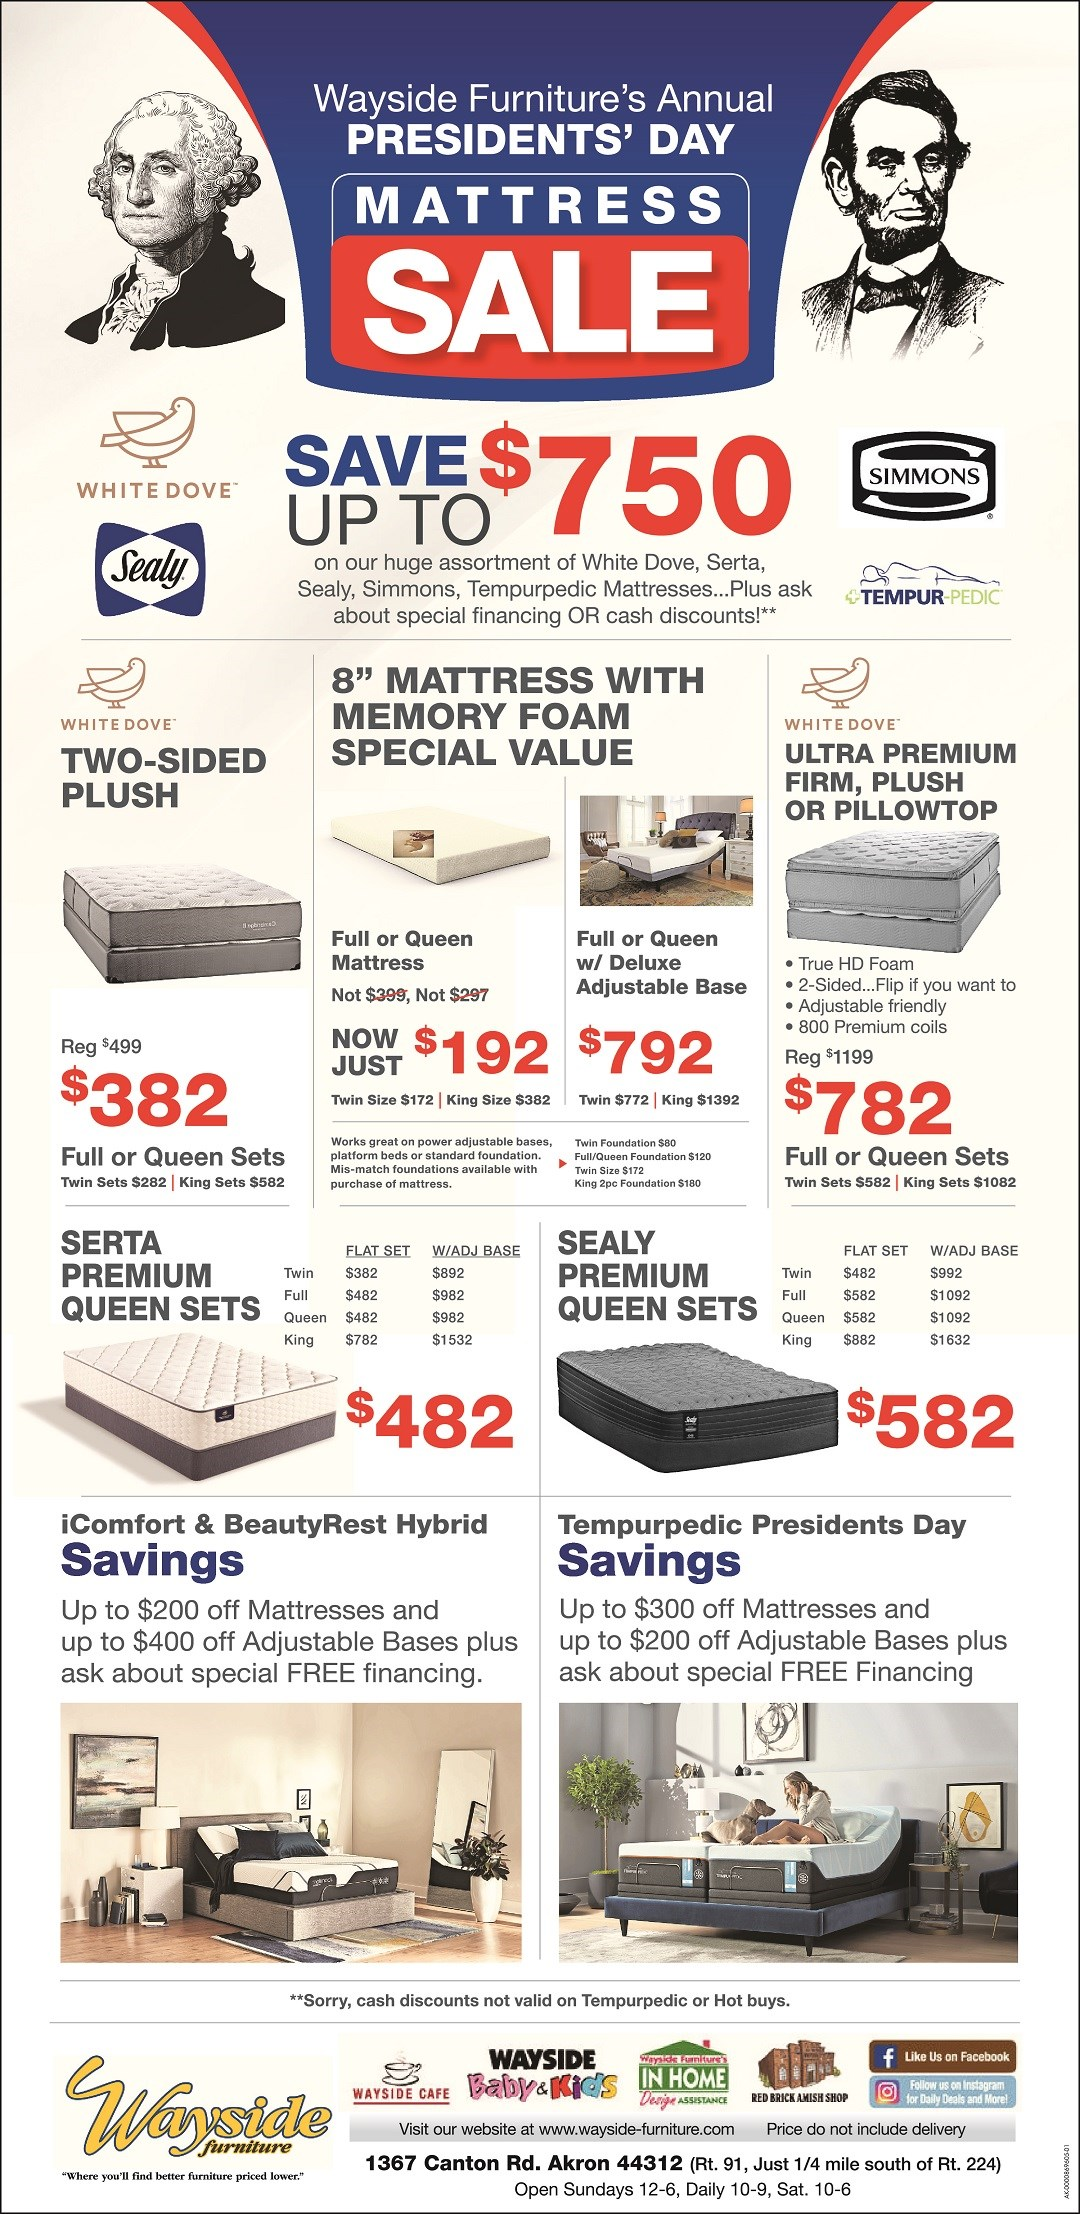 Wayside Furniture's Annual Presidents Day Mattress Sale. Save up to $750 on White Dove, Serta, Sealy, simmons, Tmepurpedic mattresses. See store for details